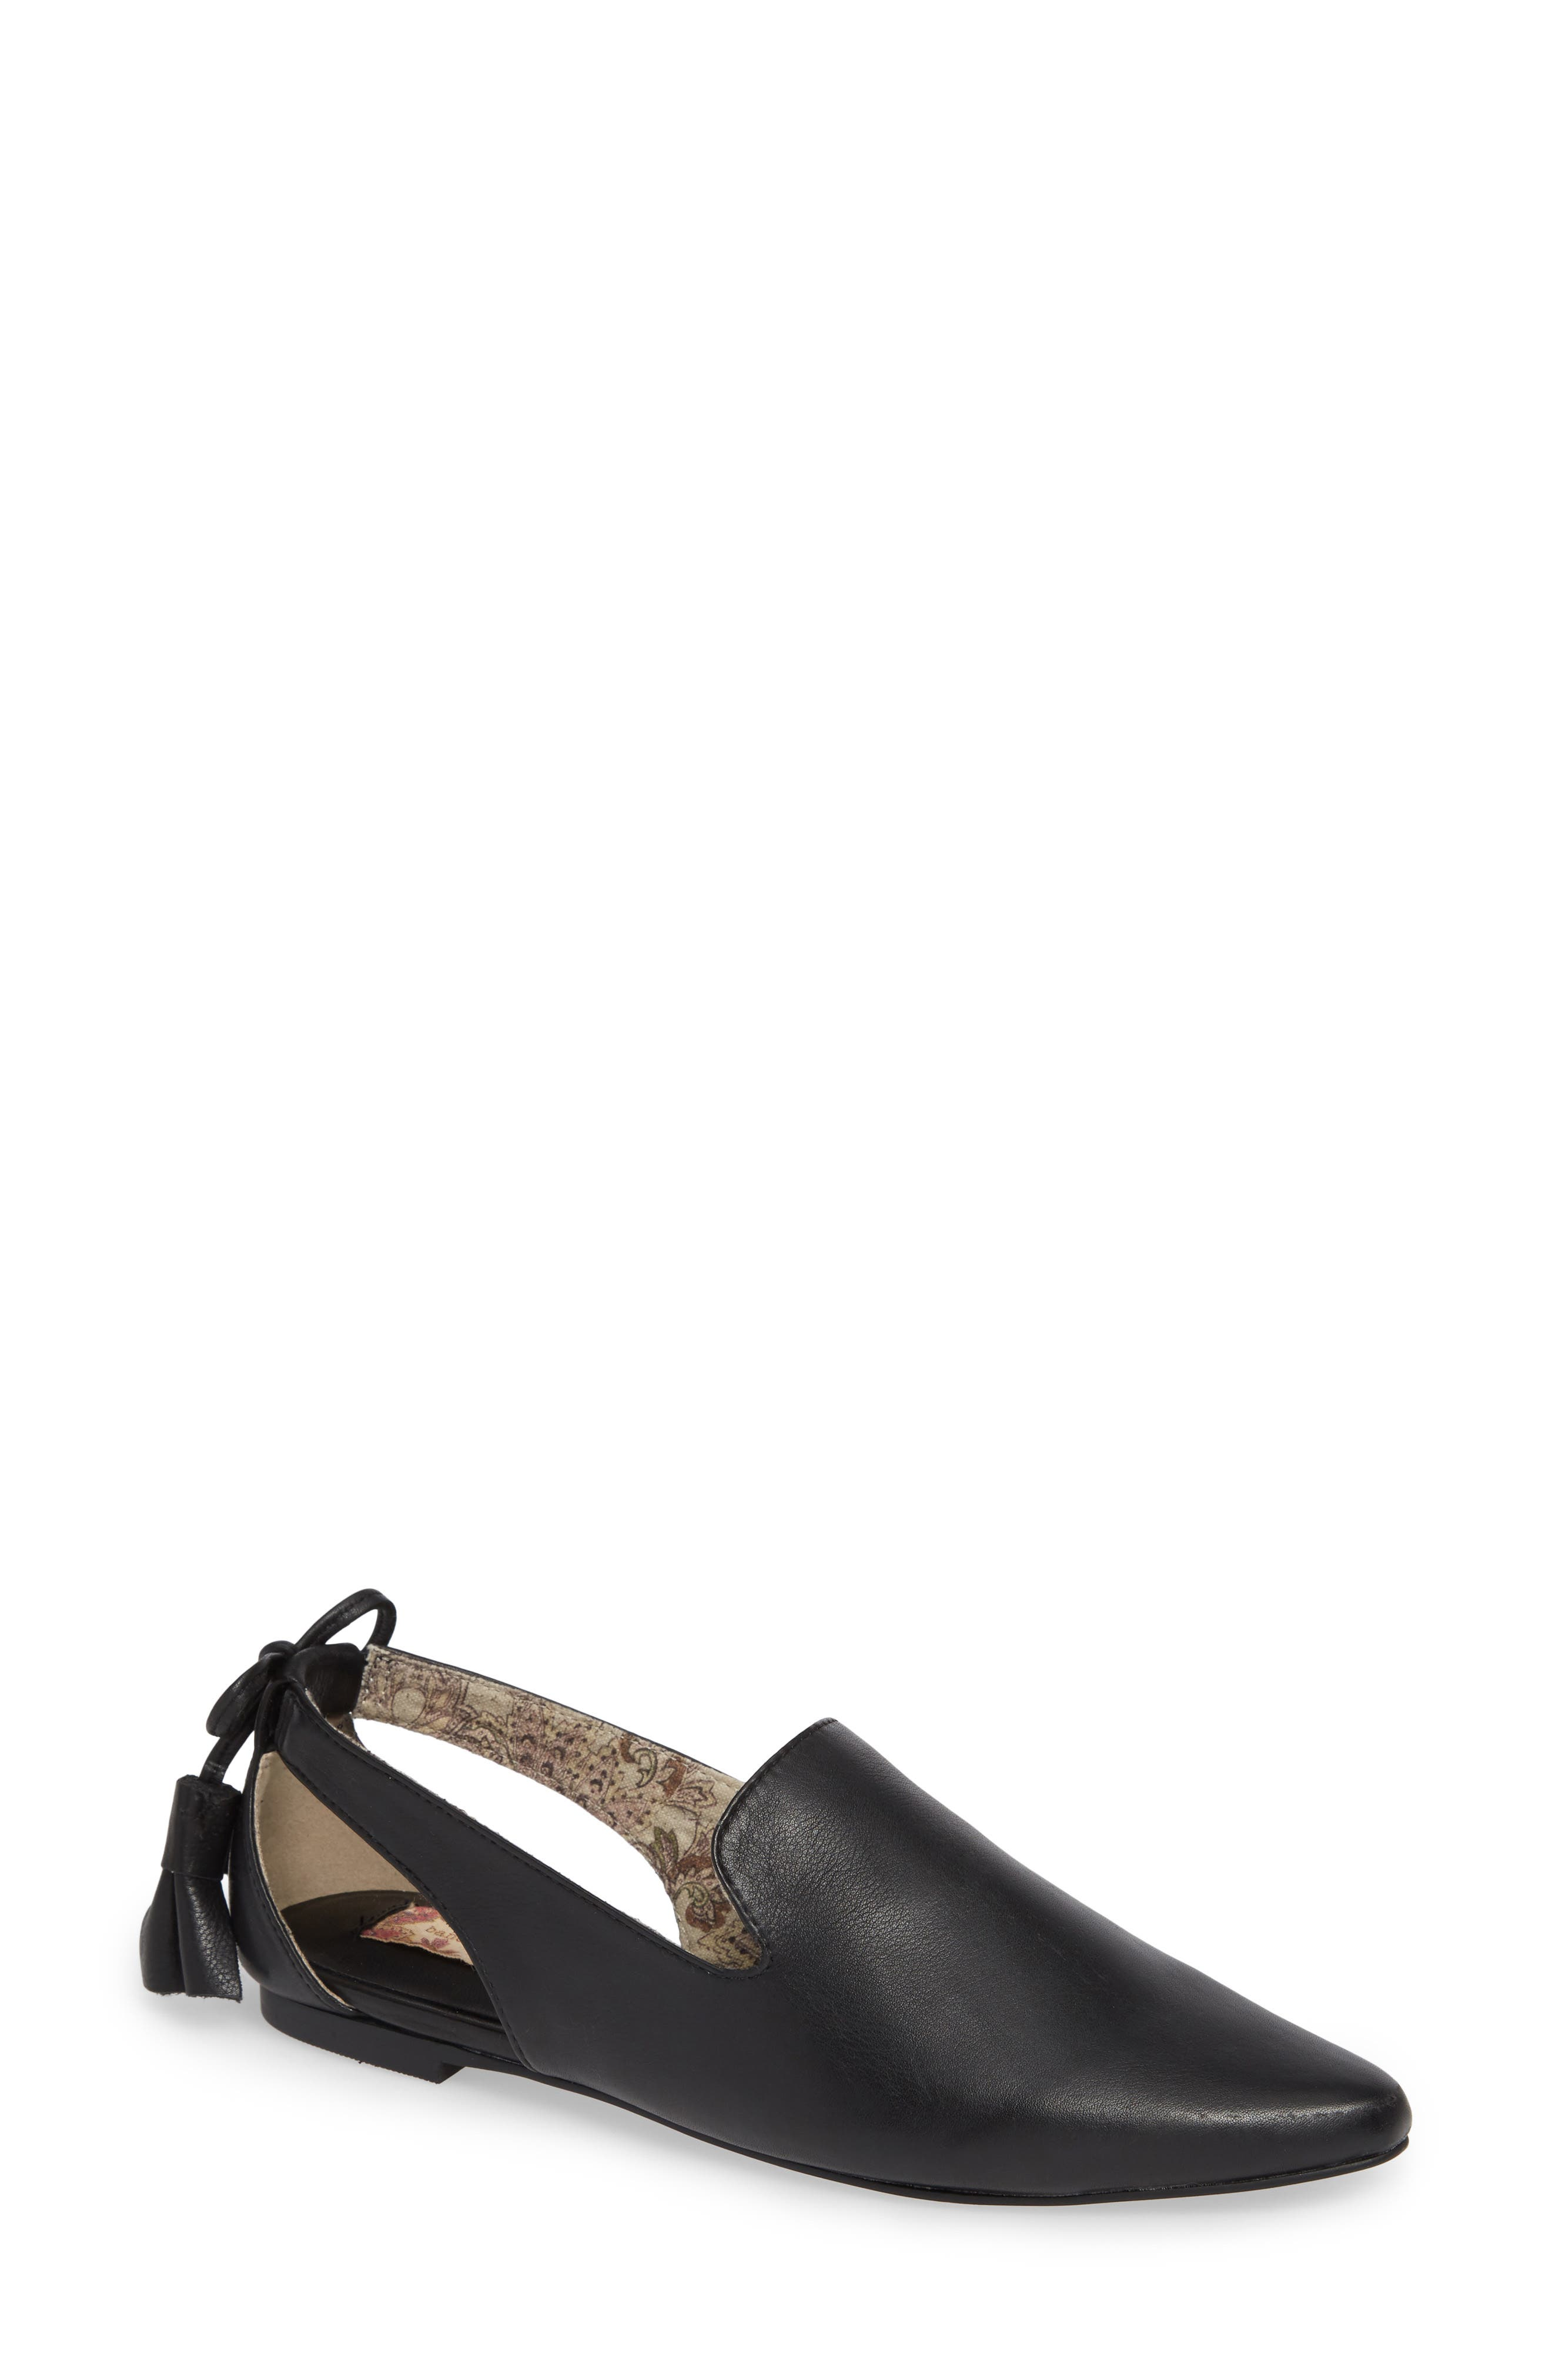 Songbird Loafer,                             Main thumbnail 1, color,                             BLACK LEATHER